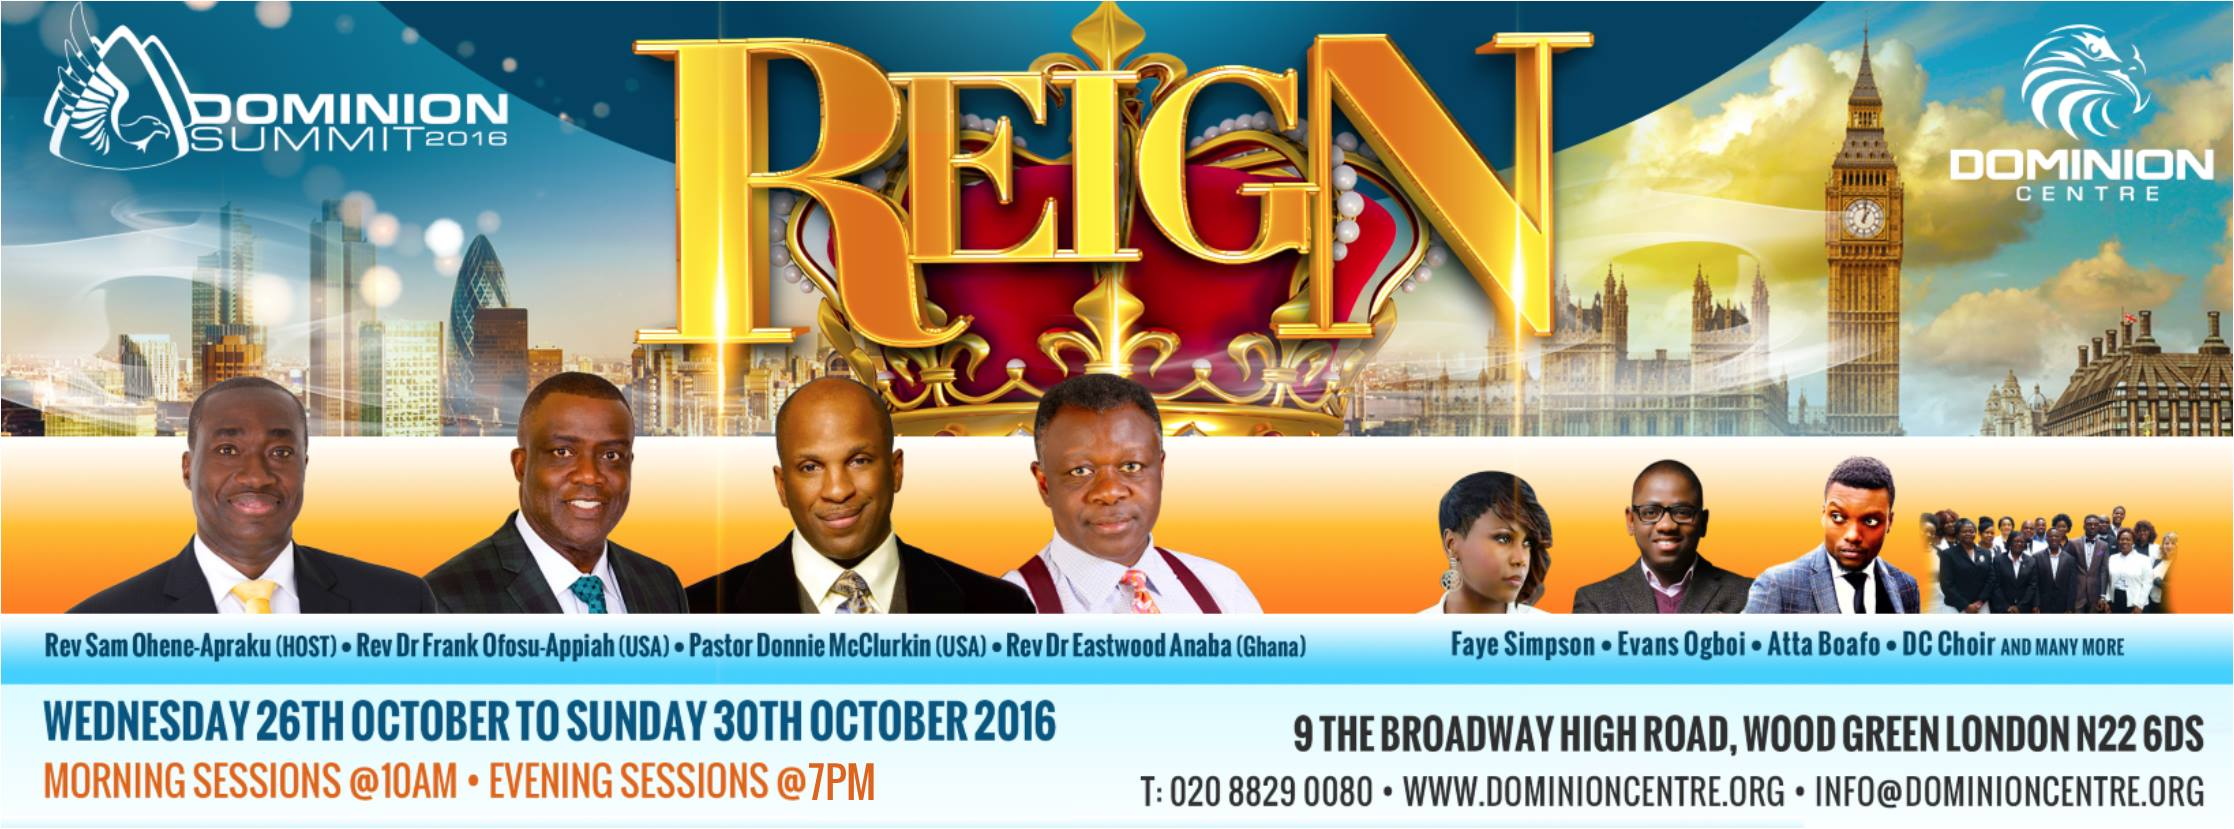 Dominion Summit 2016